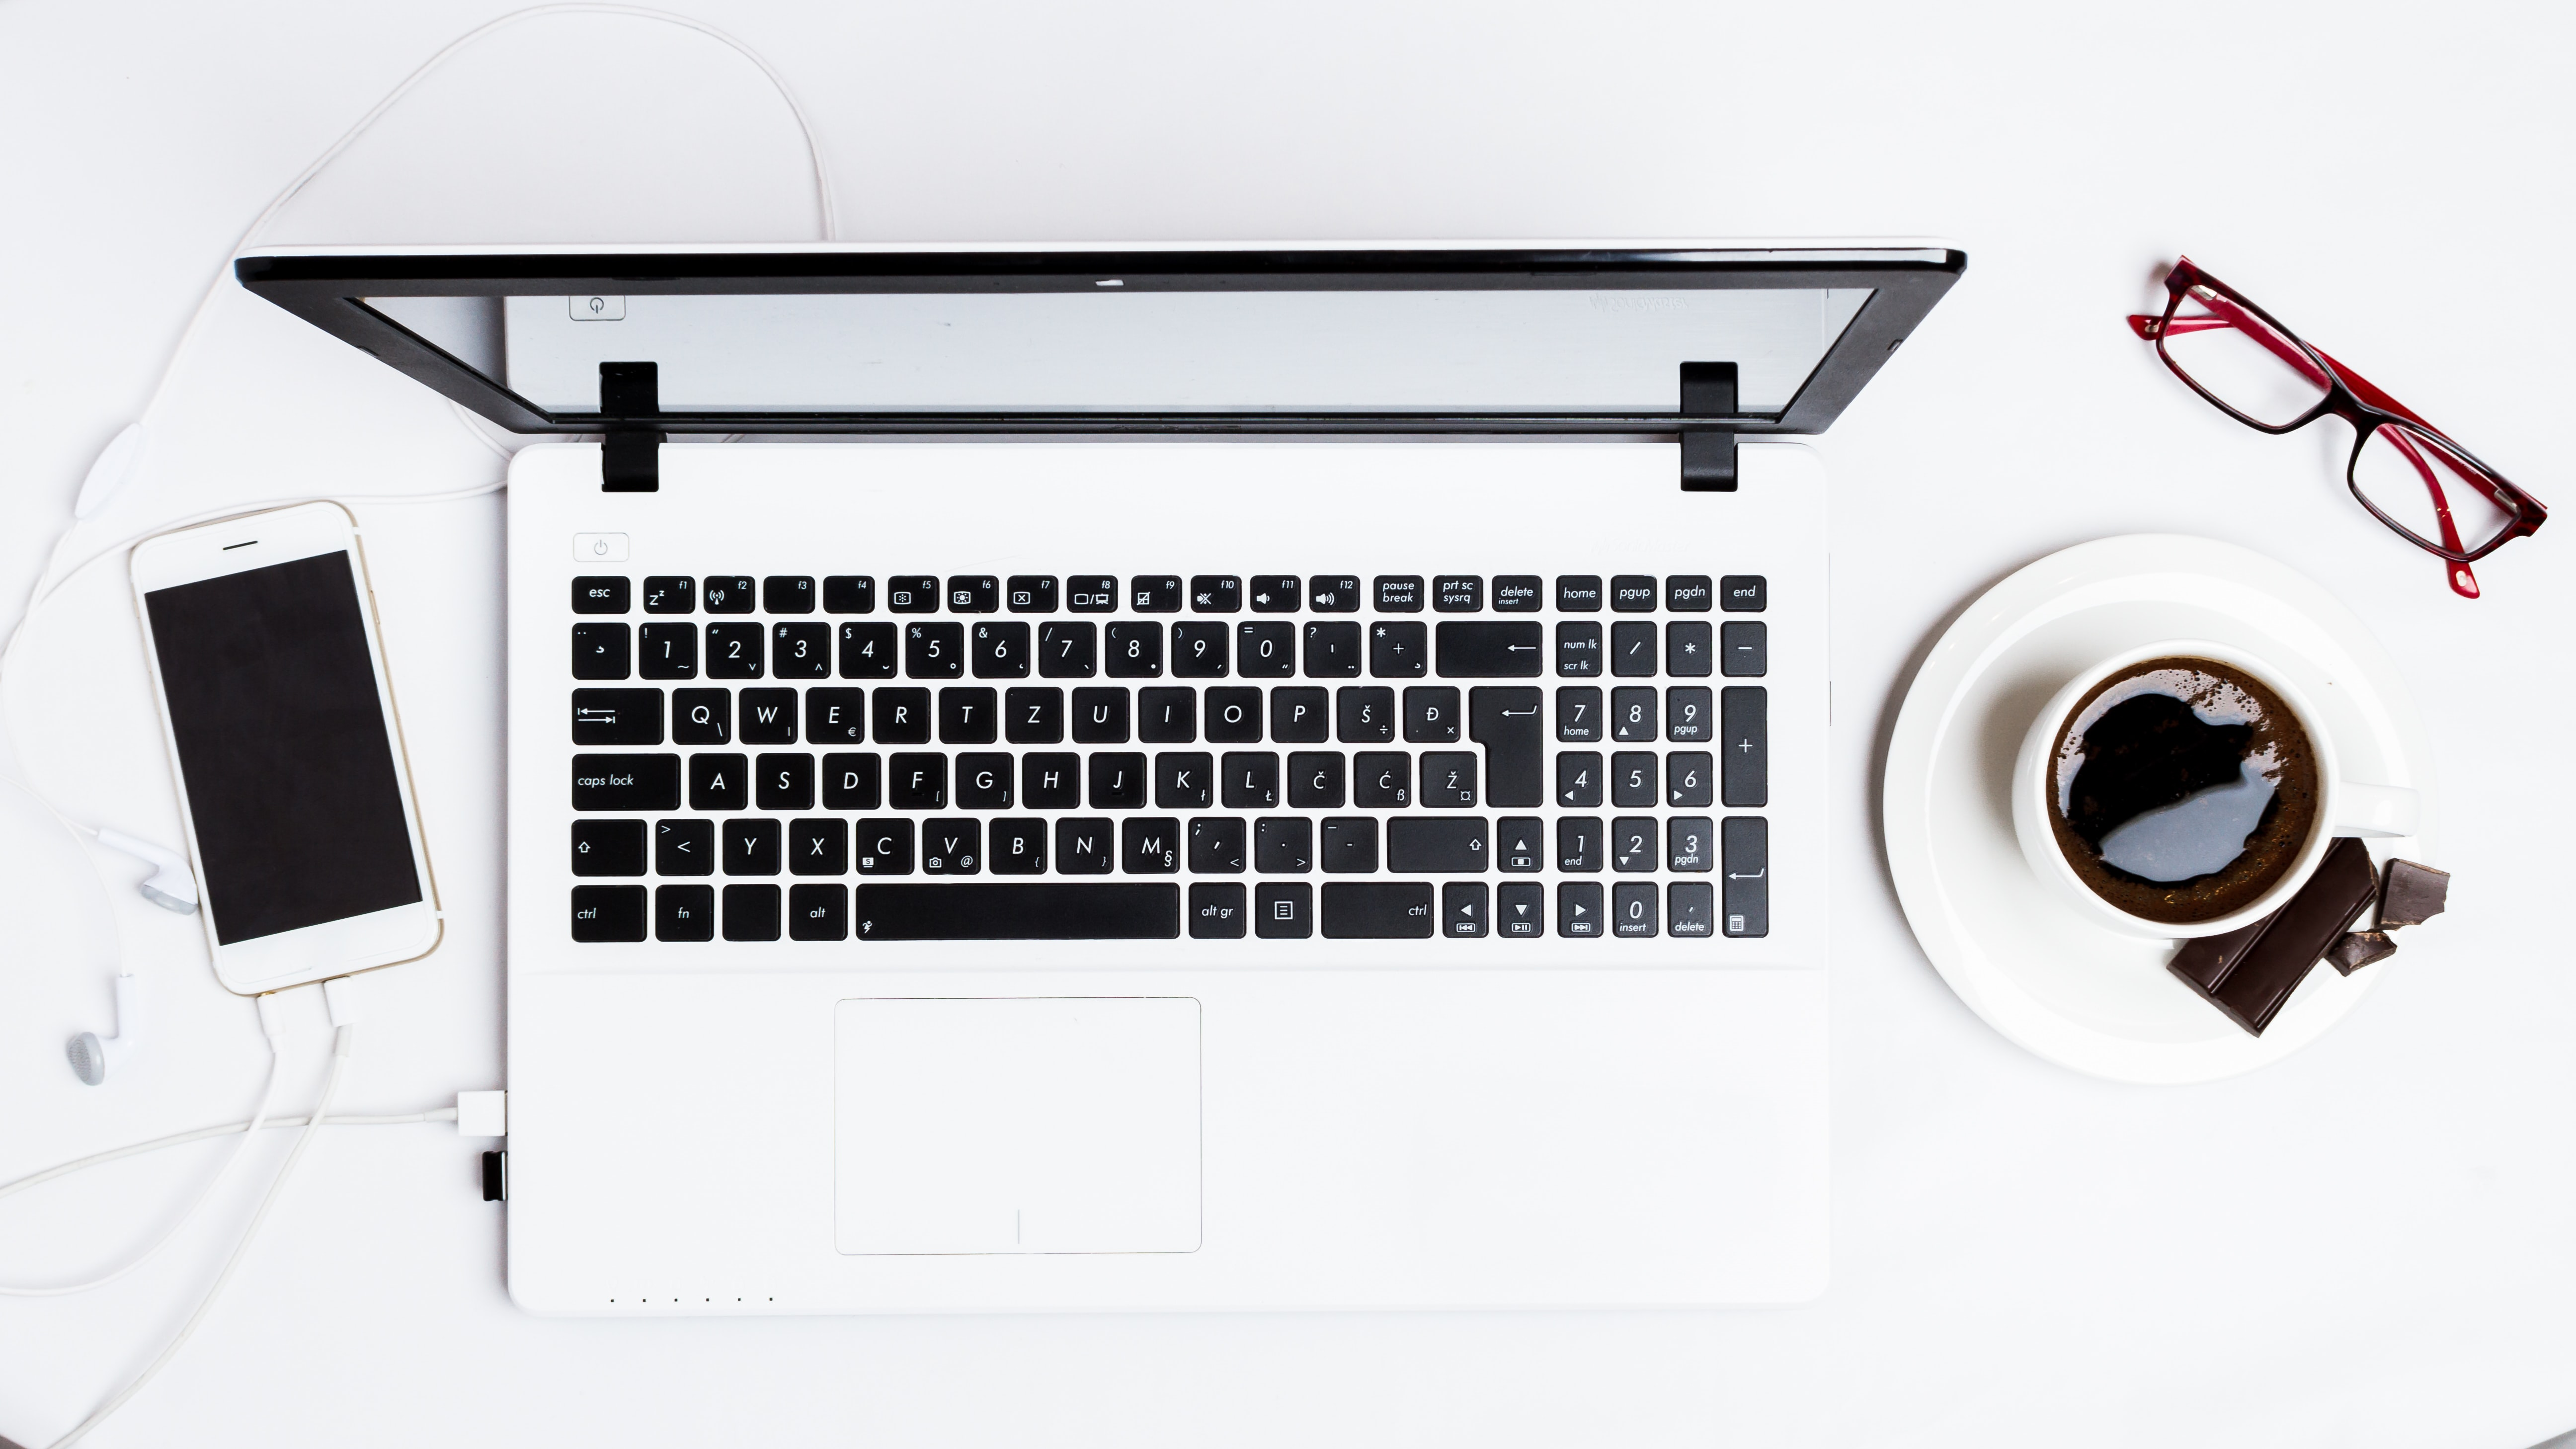 MacBook Pro between smartphone and teacup on white surface